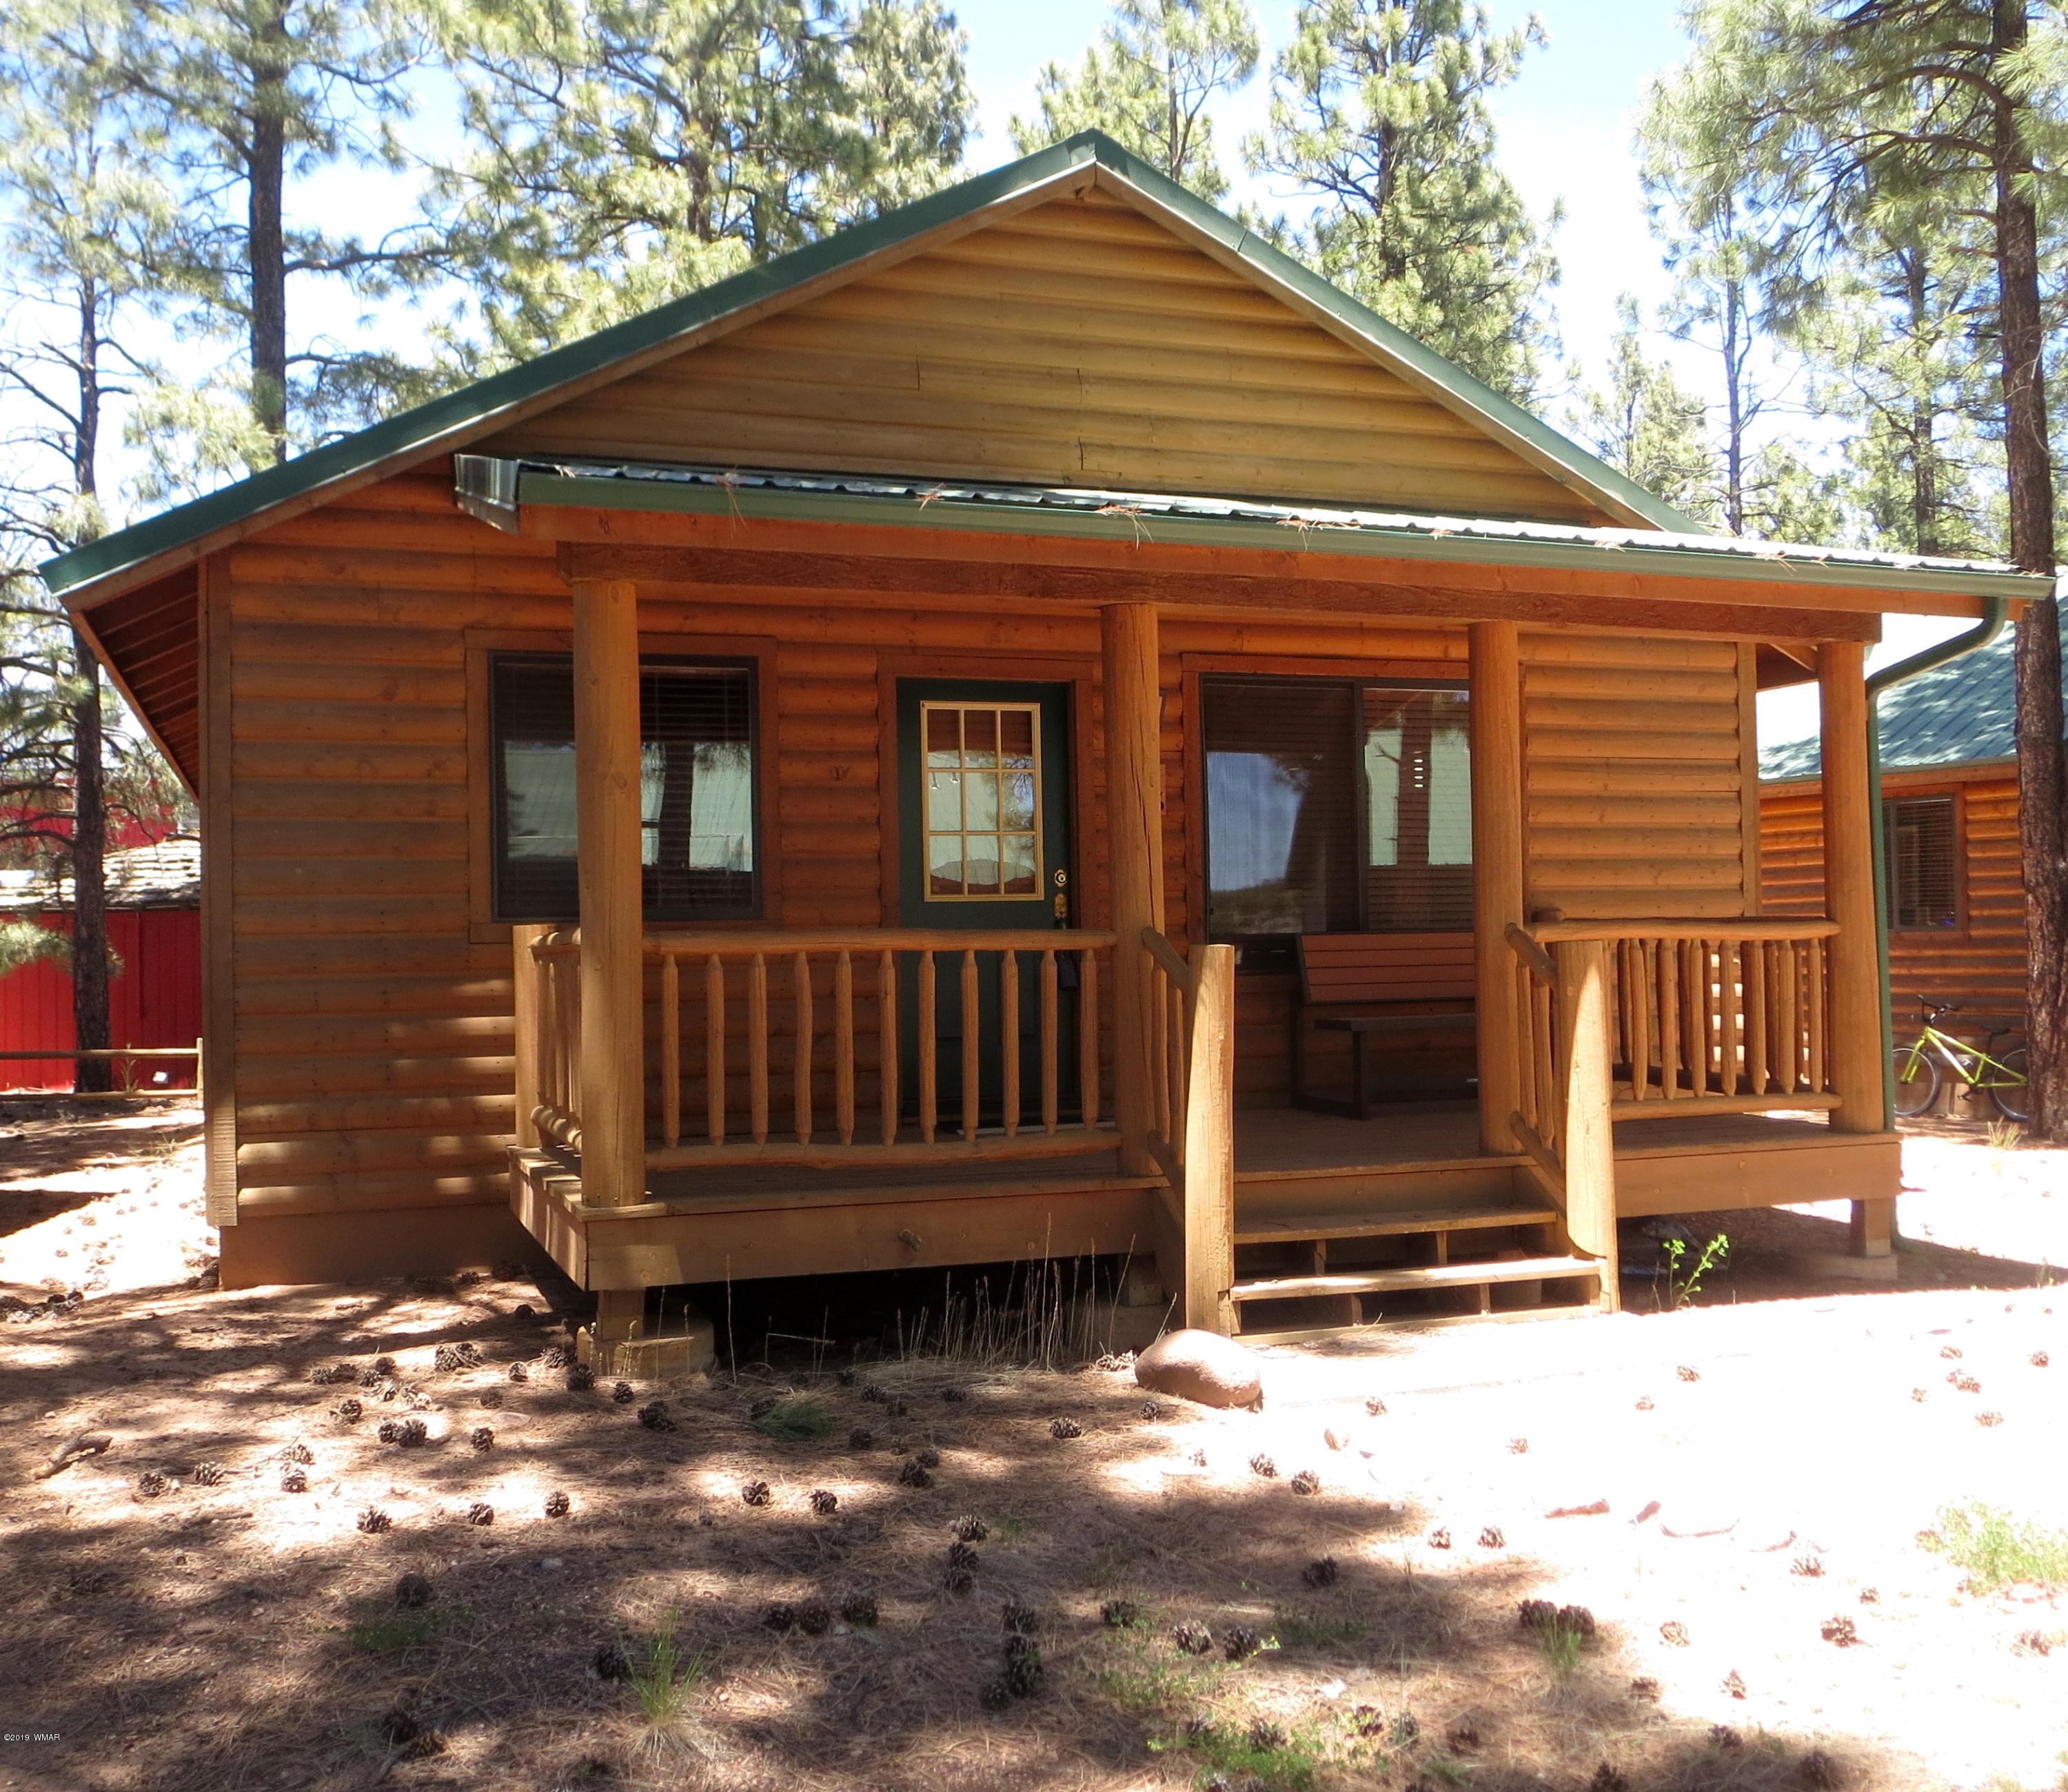 A cozy, fully furnished cabin in a quiet and peaceful area of Bison Ranch.  This cabin has been updated with painting, new carpet and beautiful granite counter tops and new sinks throughout.  A short walk to the park, fish & release pond, tennis courts and playground area provide fun for the whole family. Close to the National Forest for miles of hiking, riding quads or driving thru the forest and spotting all the wild horses, deer and elk. Nearby amenities include the Bison Town restaurant, shops and horse back riding stables. Plenty to do or just relax  and enjoy the area.